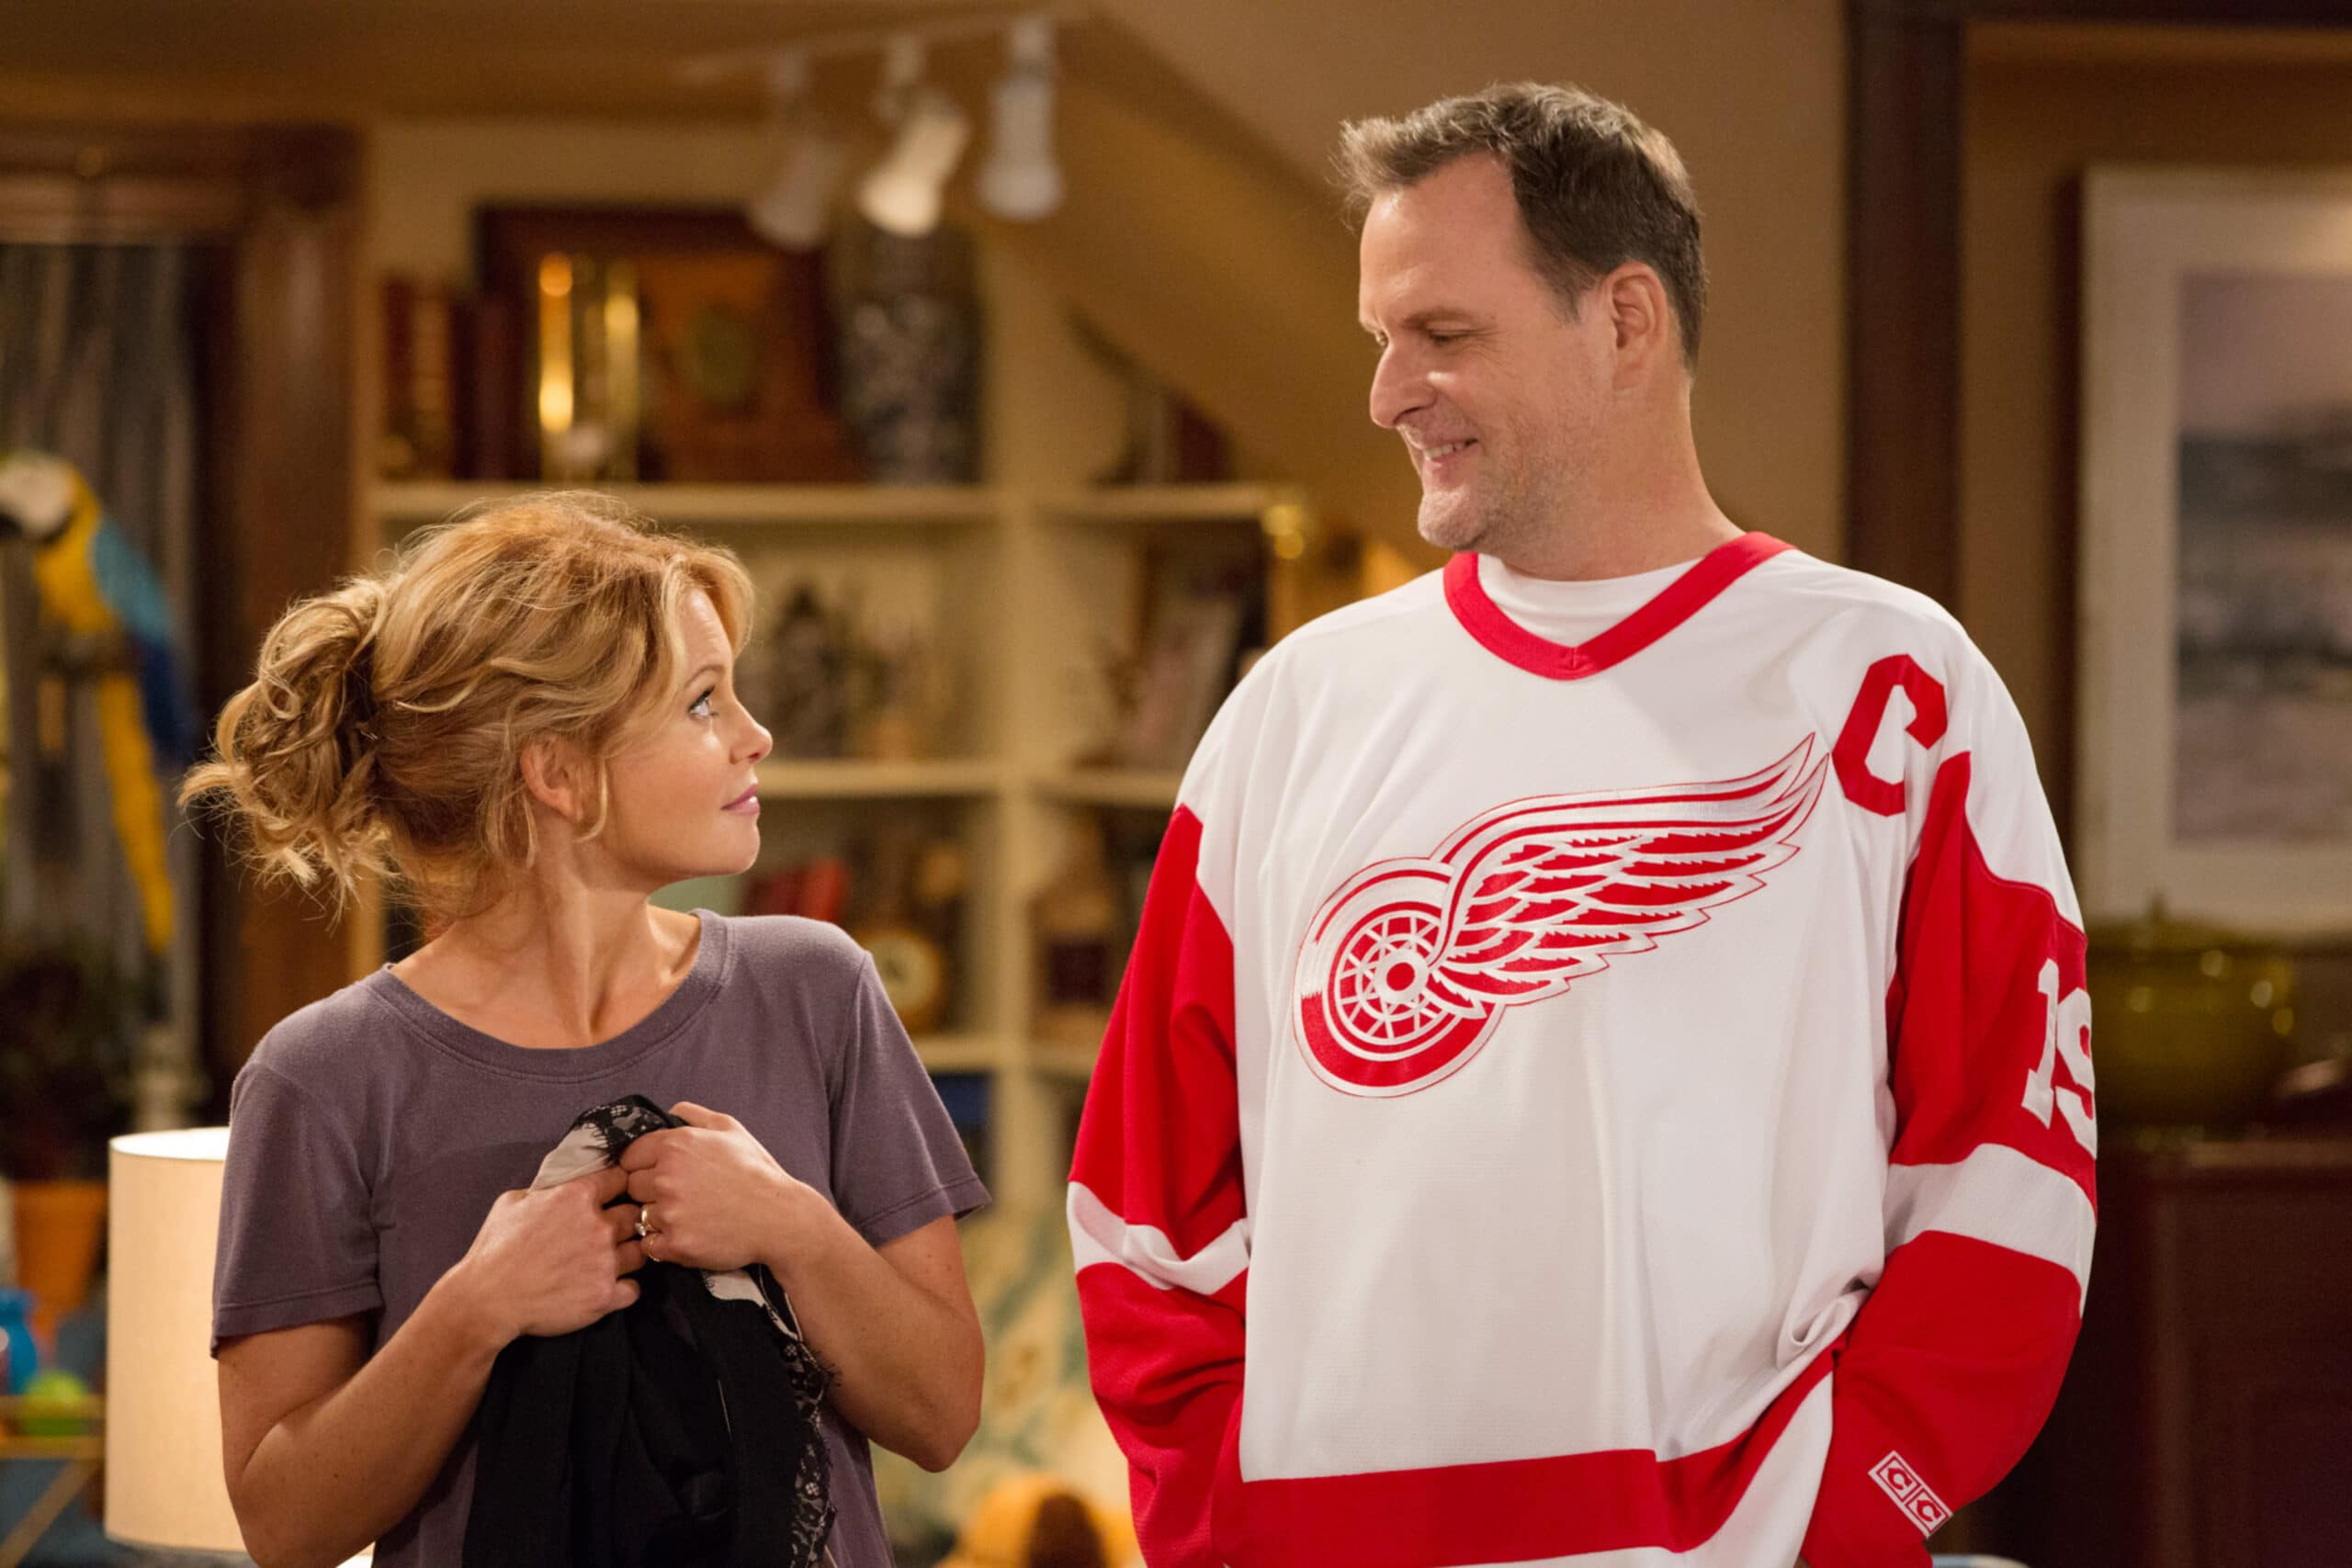 Candace Cameron Burè, Dave Coulier in 'Fuller House'